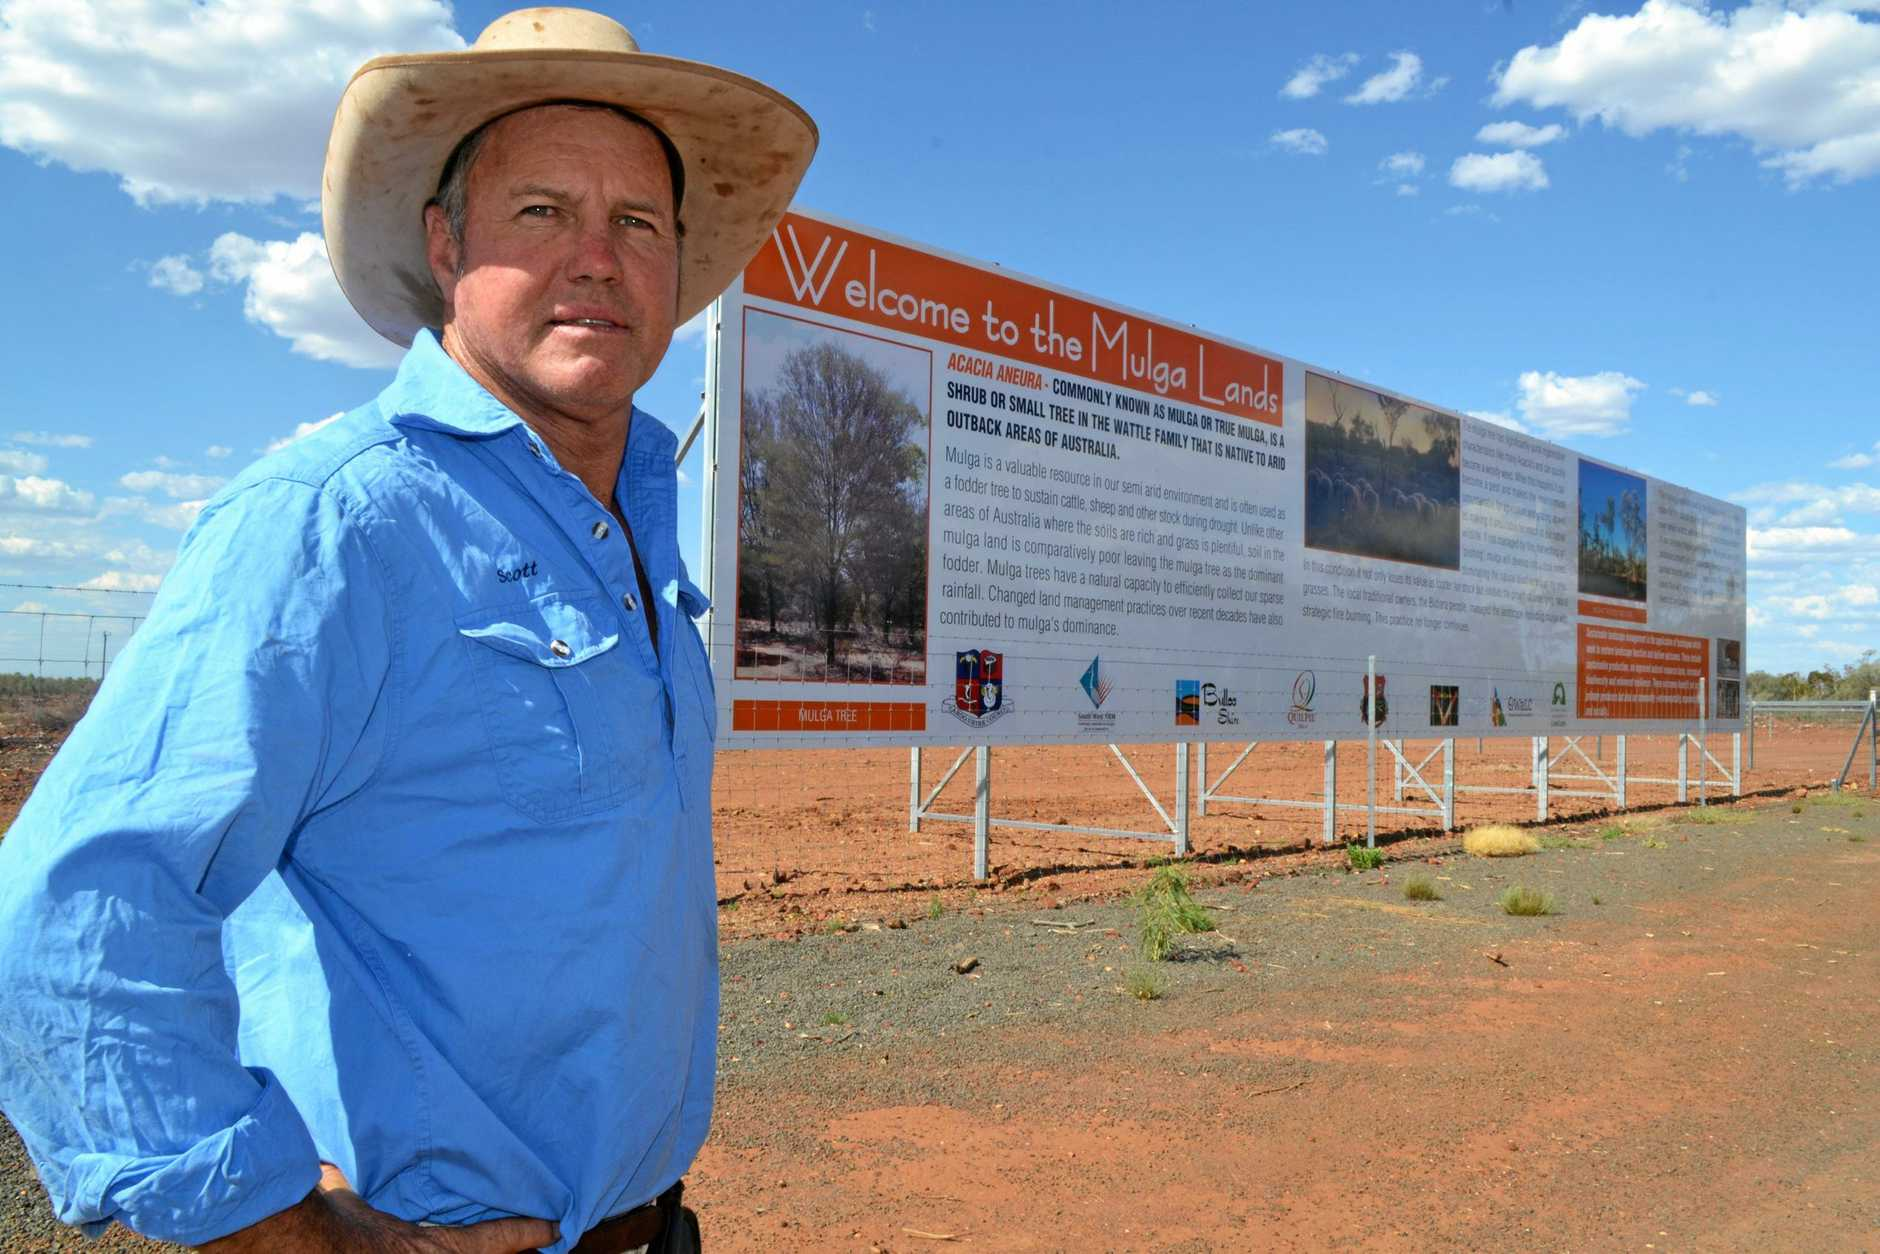 MULGA MAN: Scott Sargood was one of the first to campaign for landholders rights and fair vegetation laws in Queensland.